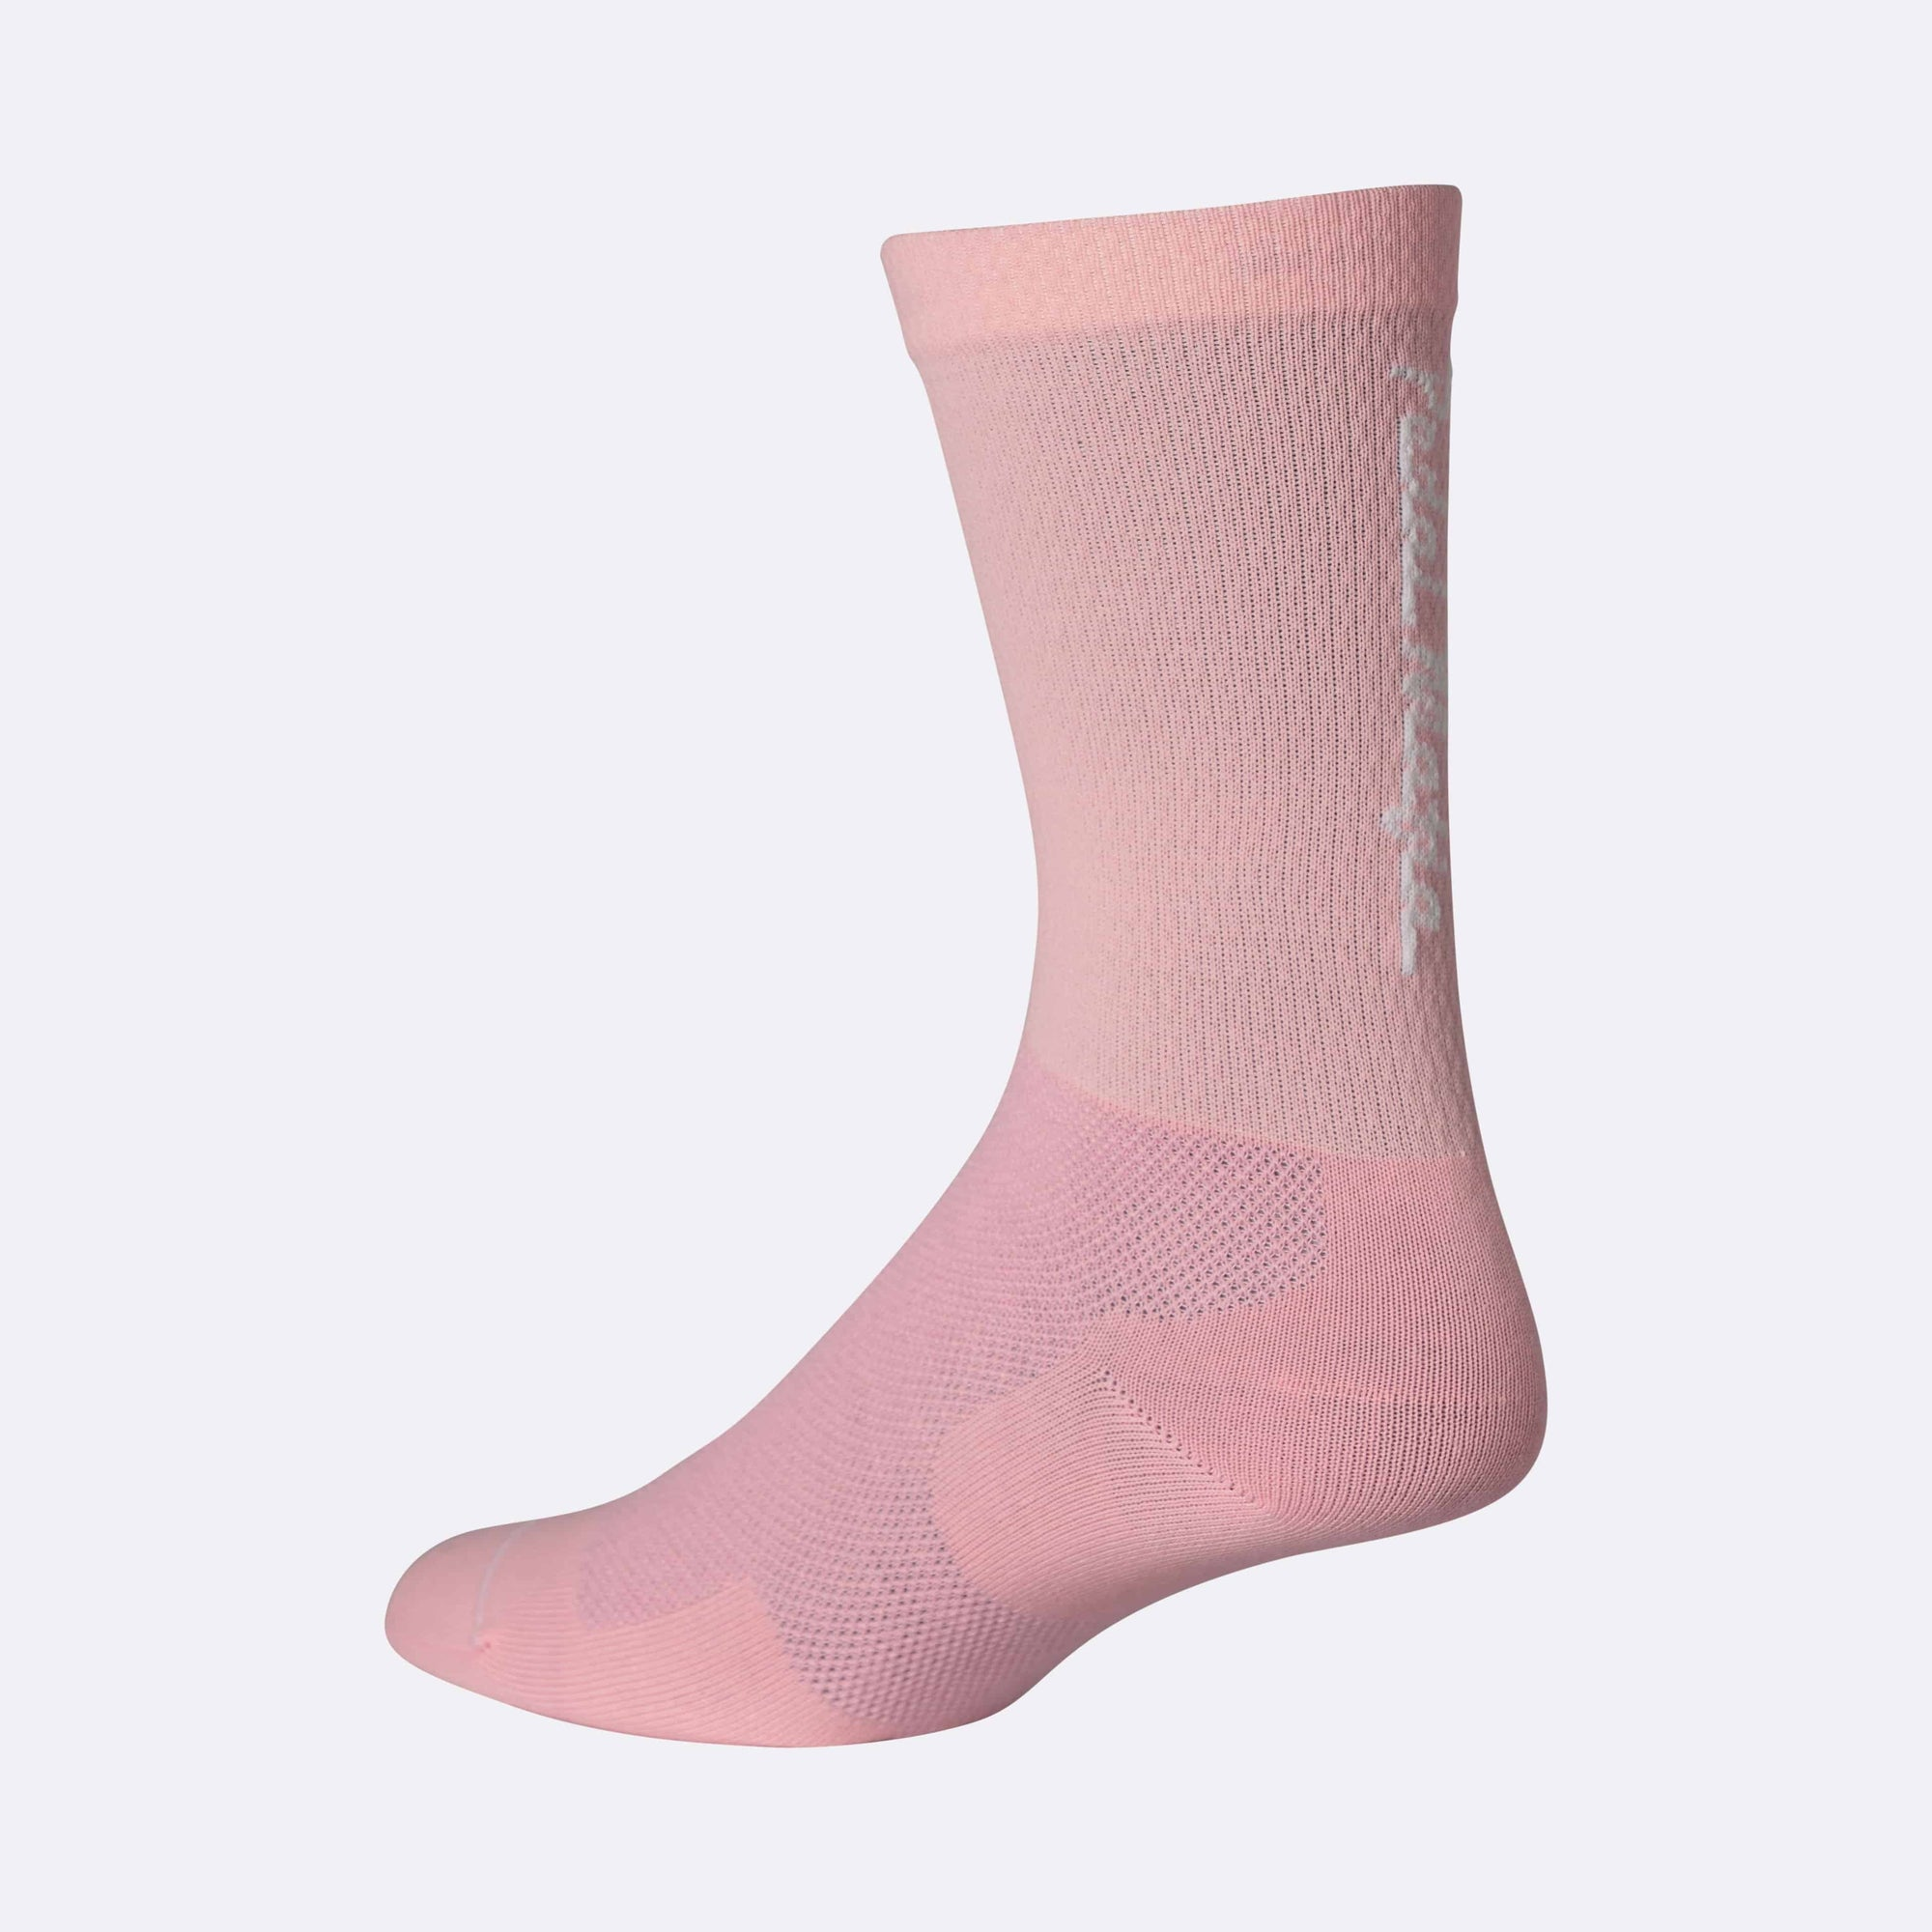 PEDAL MAFIA Tech Sock - Blush Pink